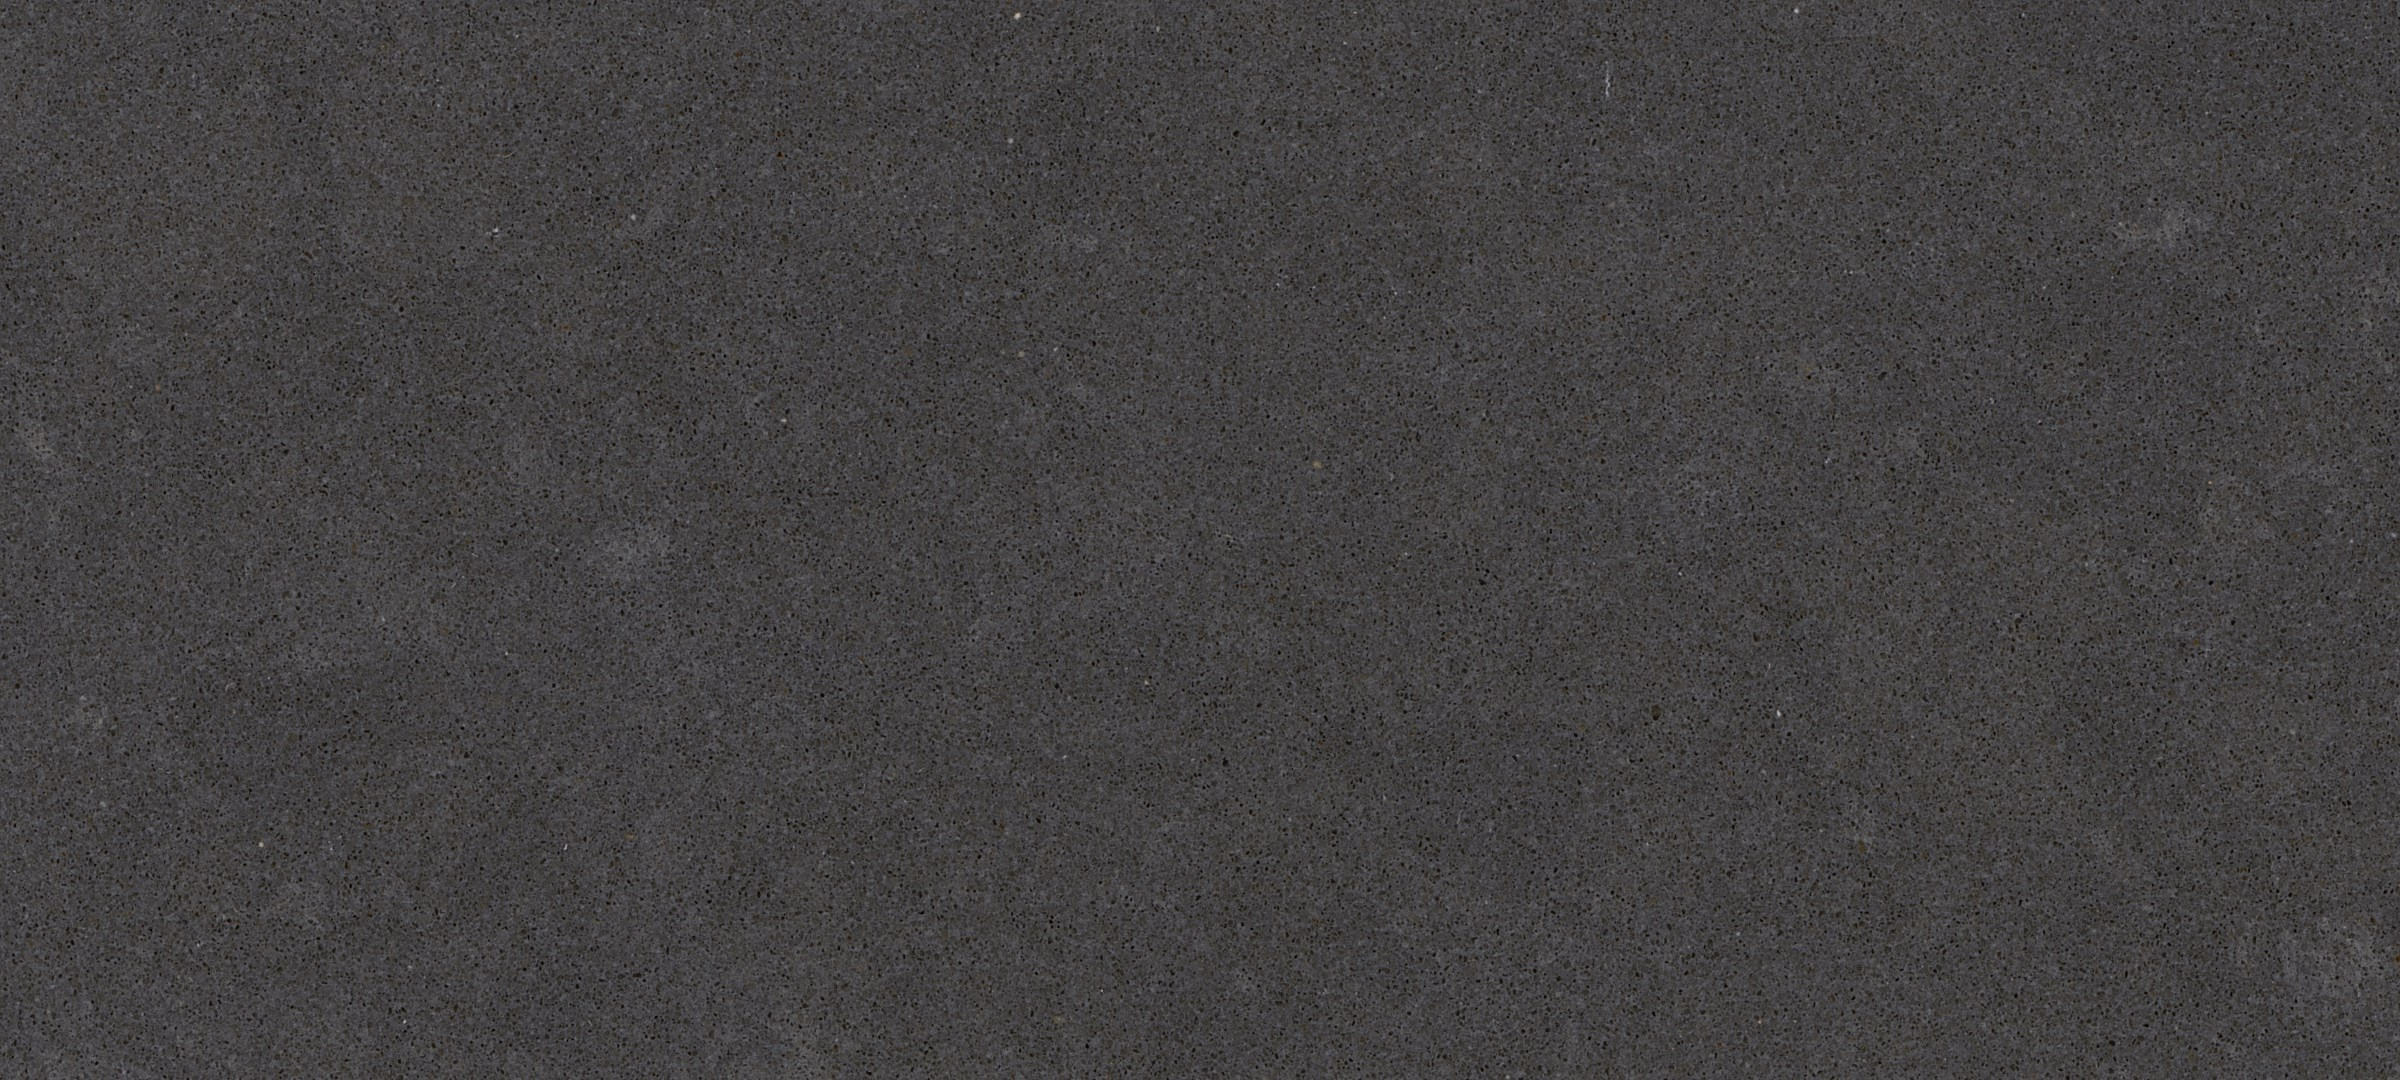 Raven 4120 Granite Countertops Seattle